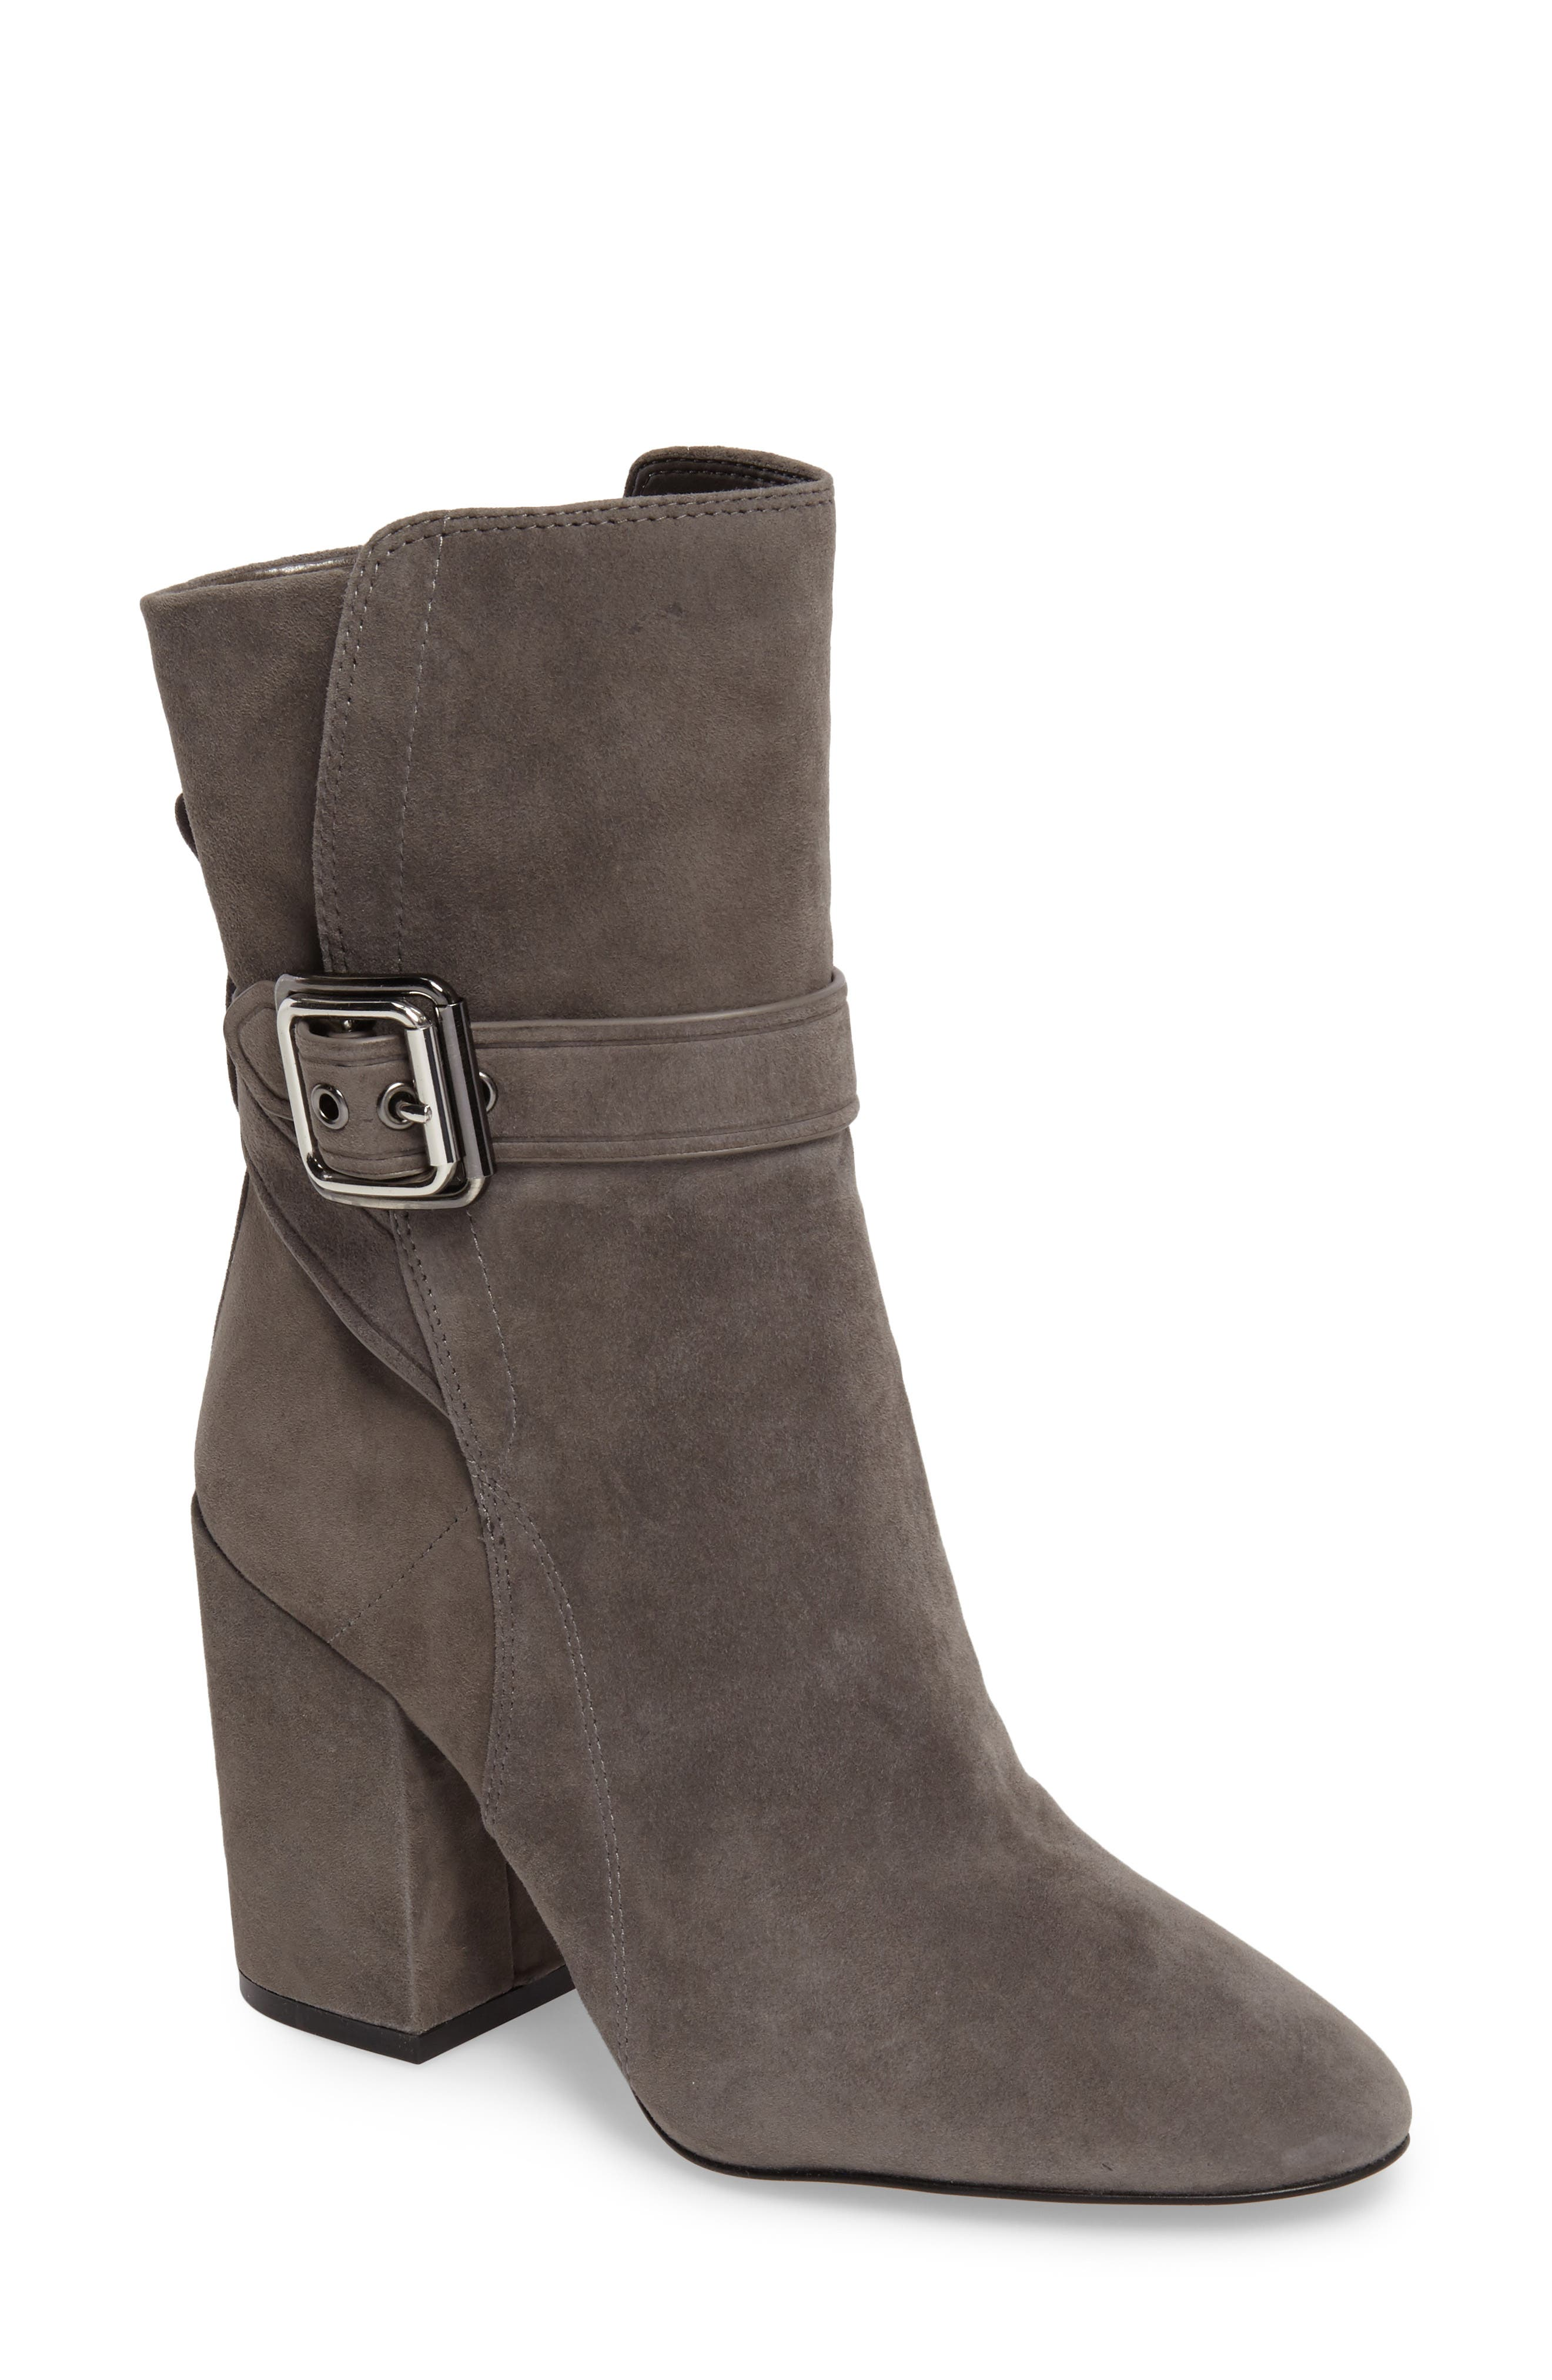 Damefaris Buckle Strap Bootie,                         Main,                         color, Greystone Suede